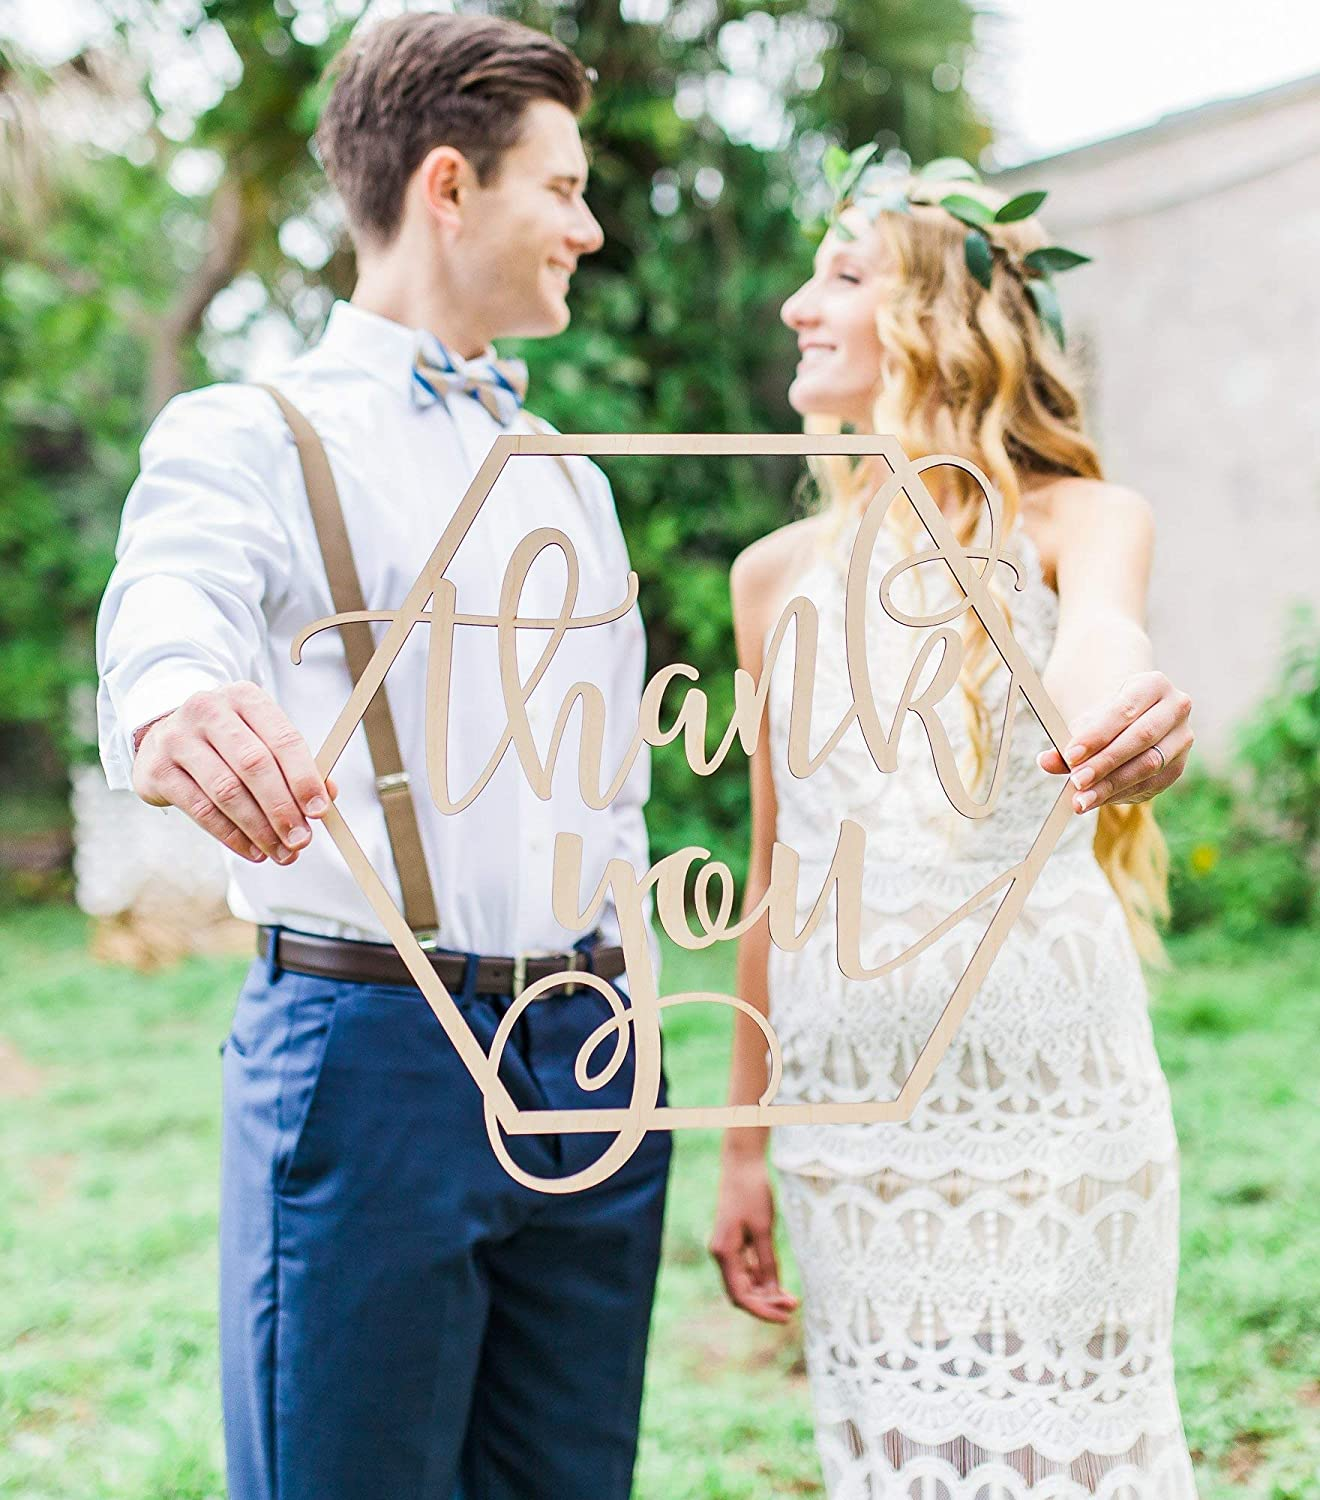 Amazon Com Wedding Thank You Sign Photo Prop Wooden Photography Sign For Portrait Bride Groom Diy Thank You Card Ideas Boho Chic Handmade